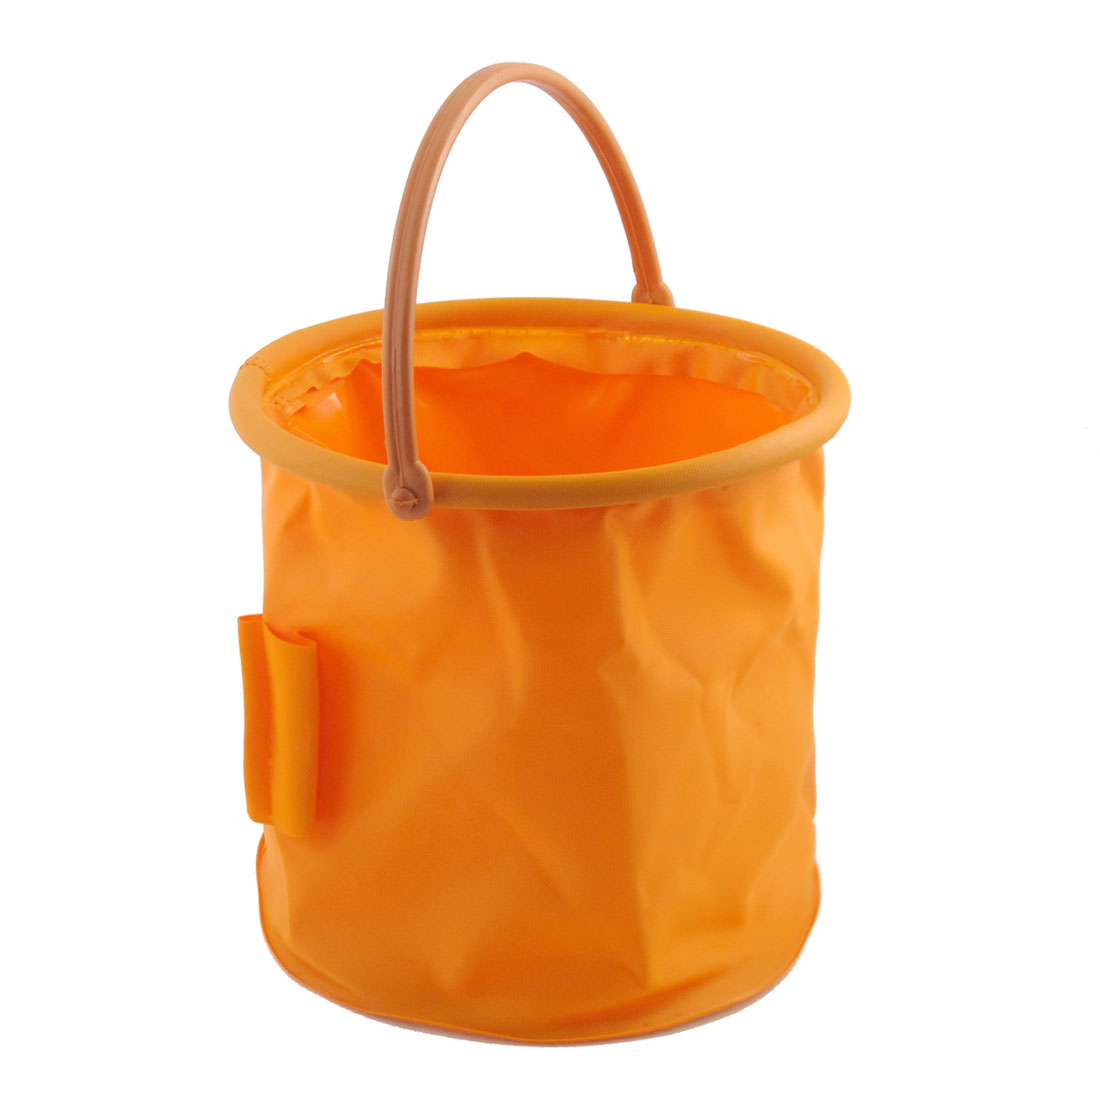 Portable Orange PVC Foldable Round Shaped Fish Pail Water Bucket 2L